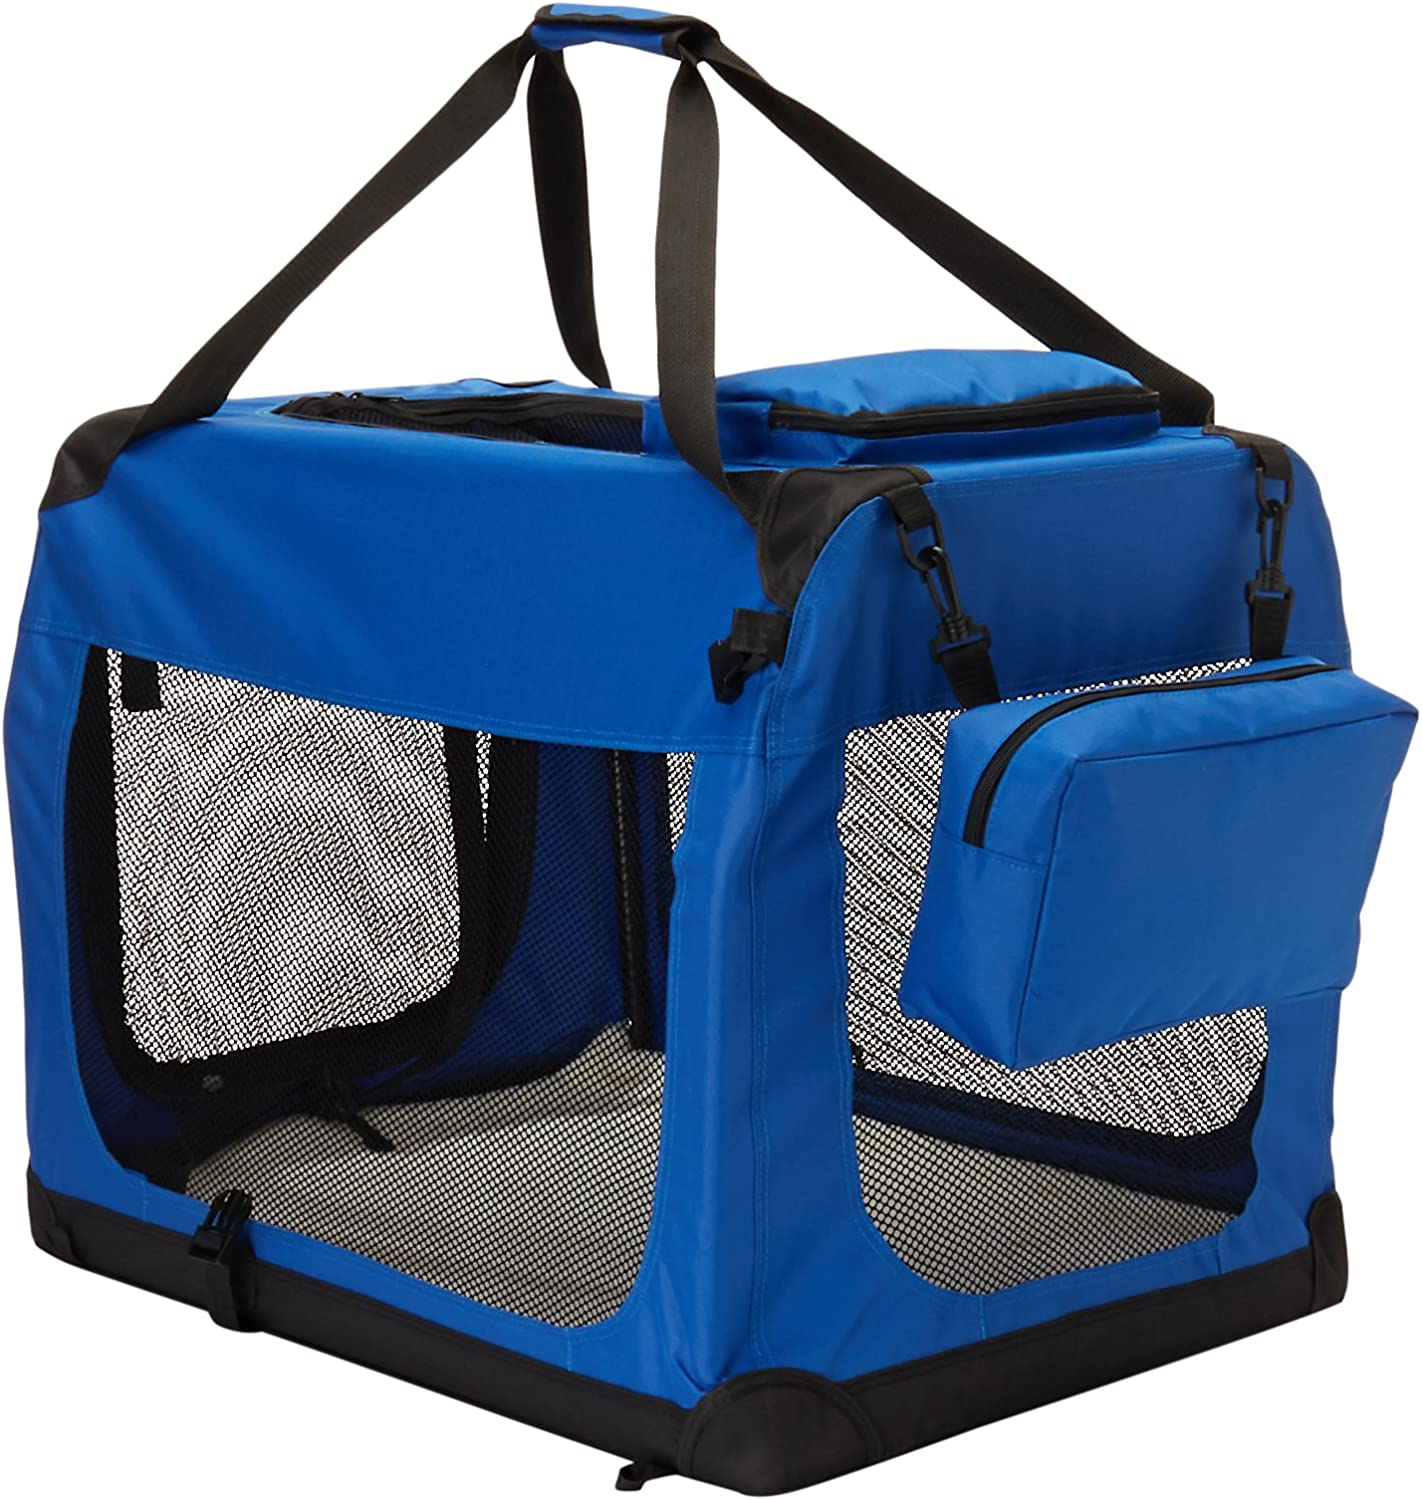 Go Pet Club Soft Crate for Pets, 20-Inch